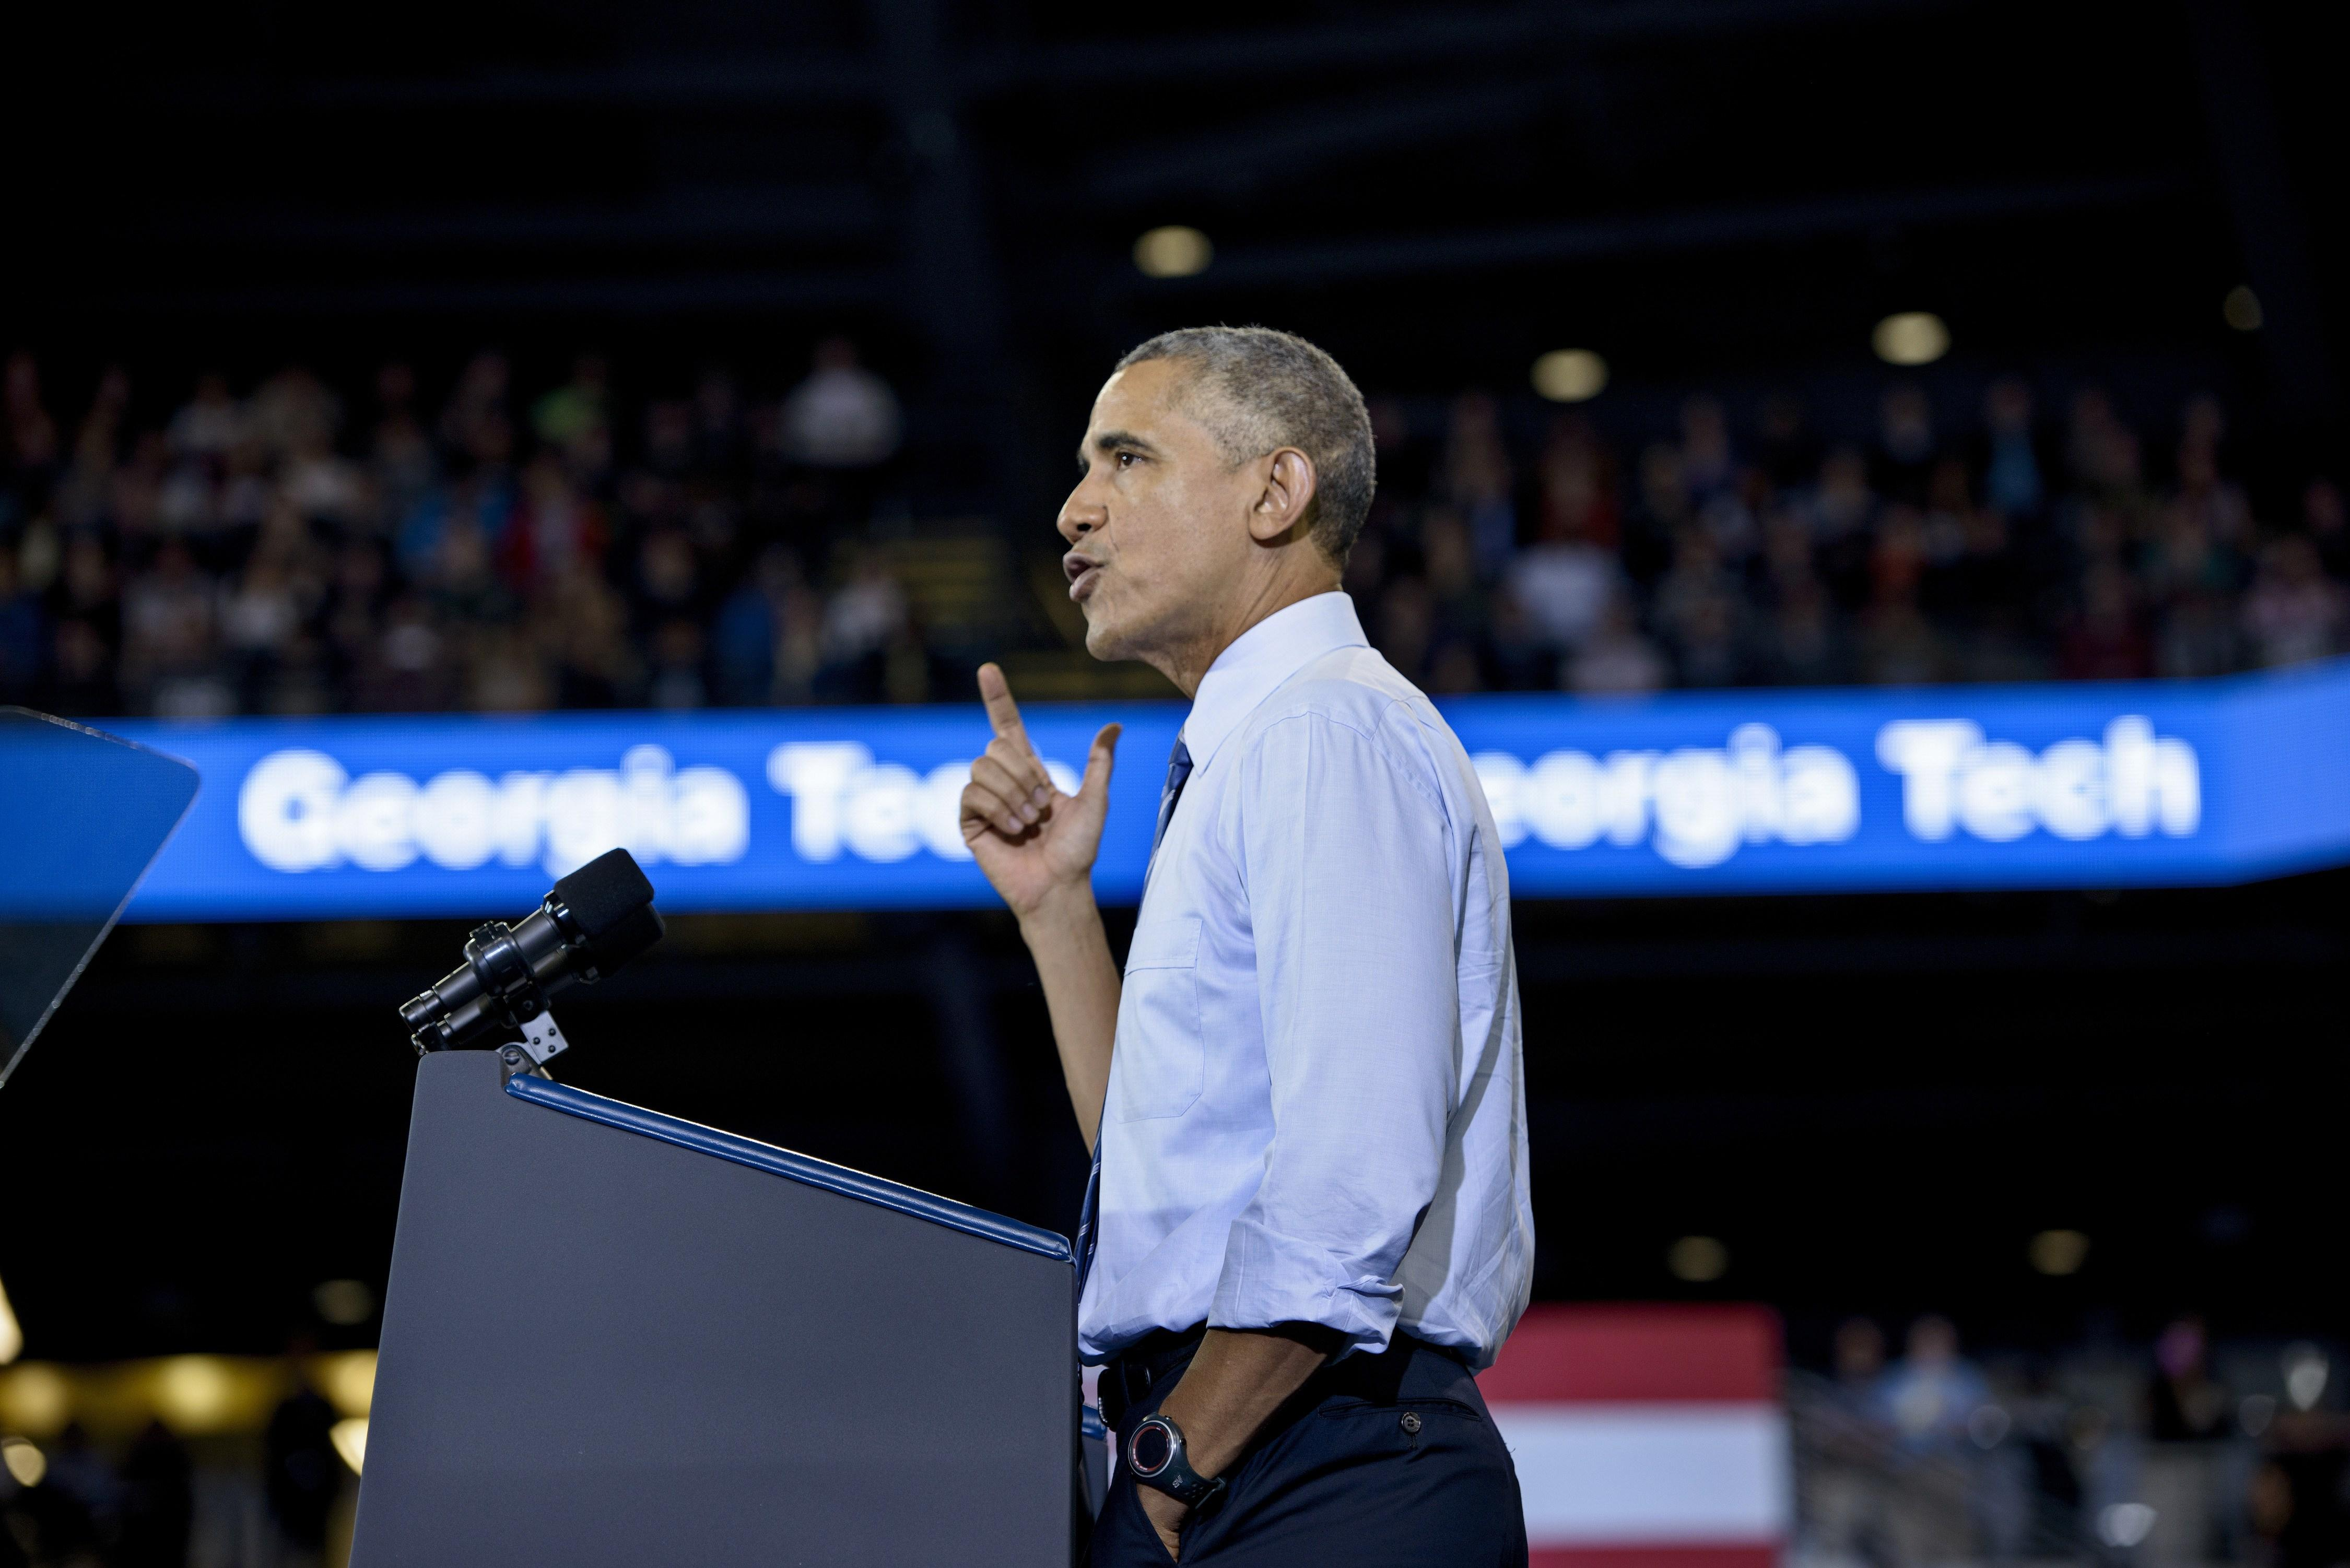 President Obama Speaks at Georgia Tech